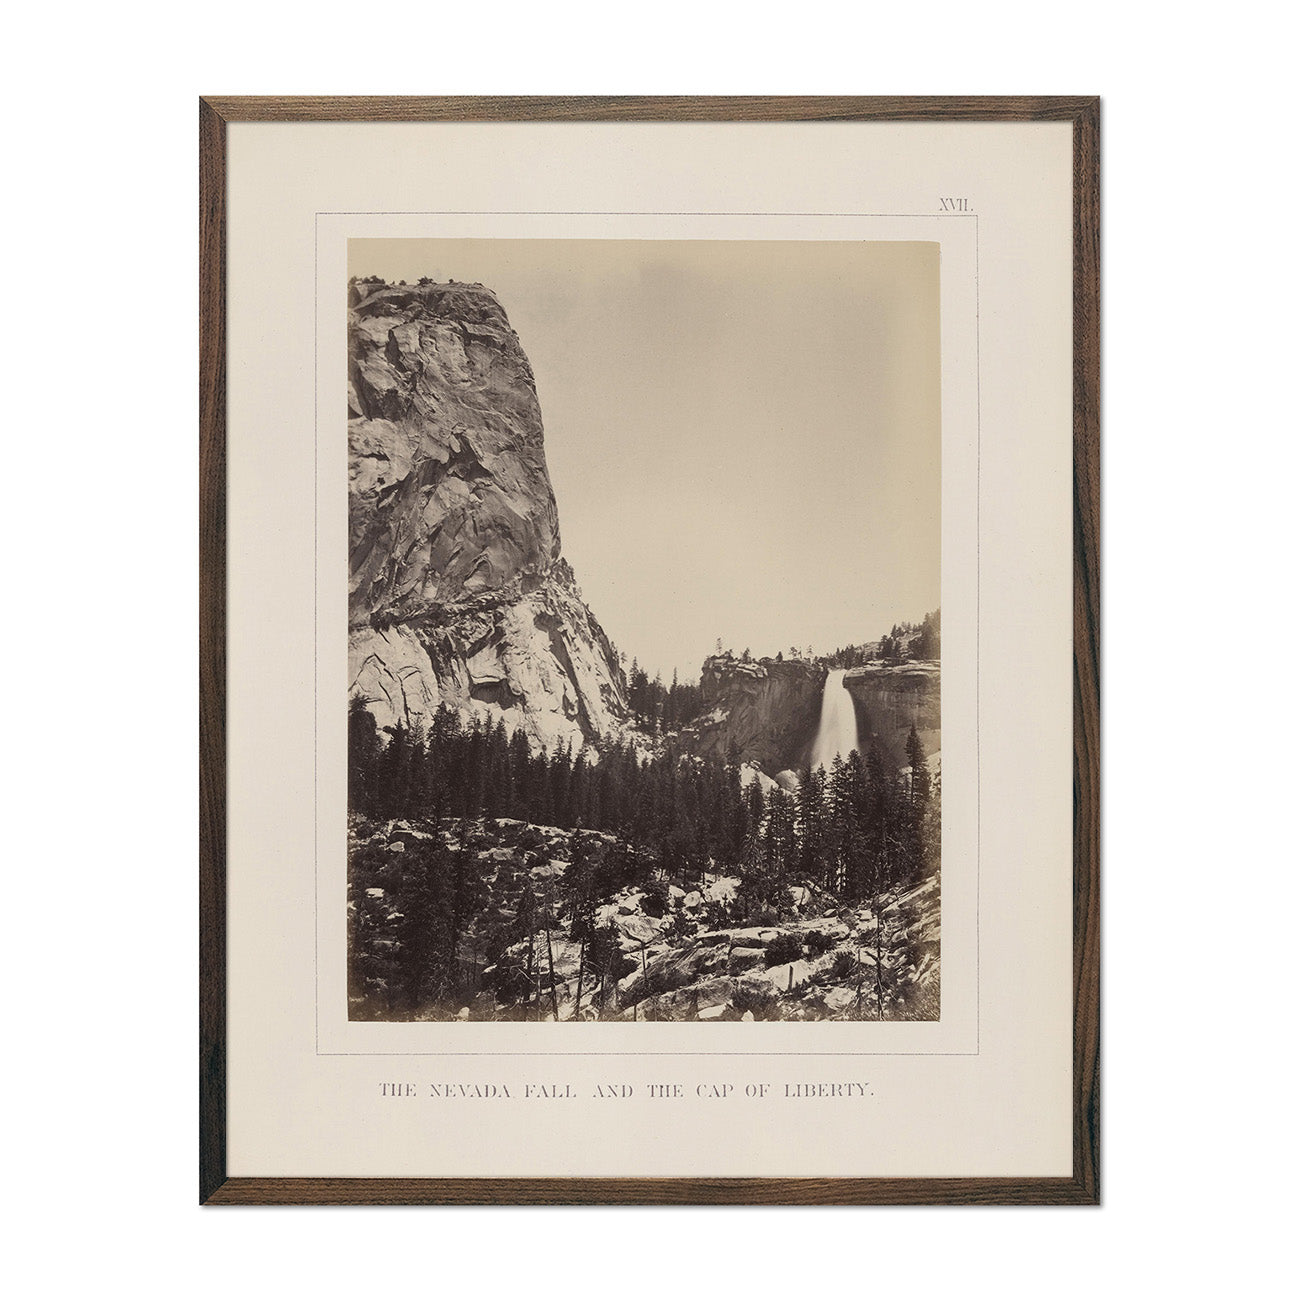 Photograph of Nevada Fall and Cap of Liberty